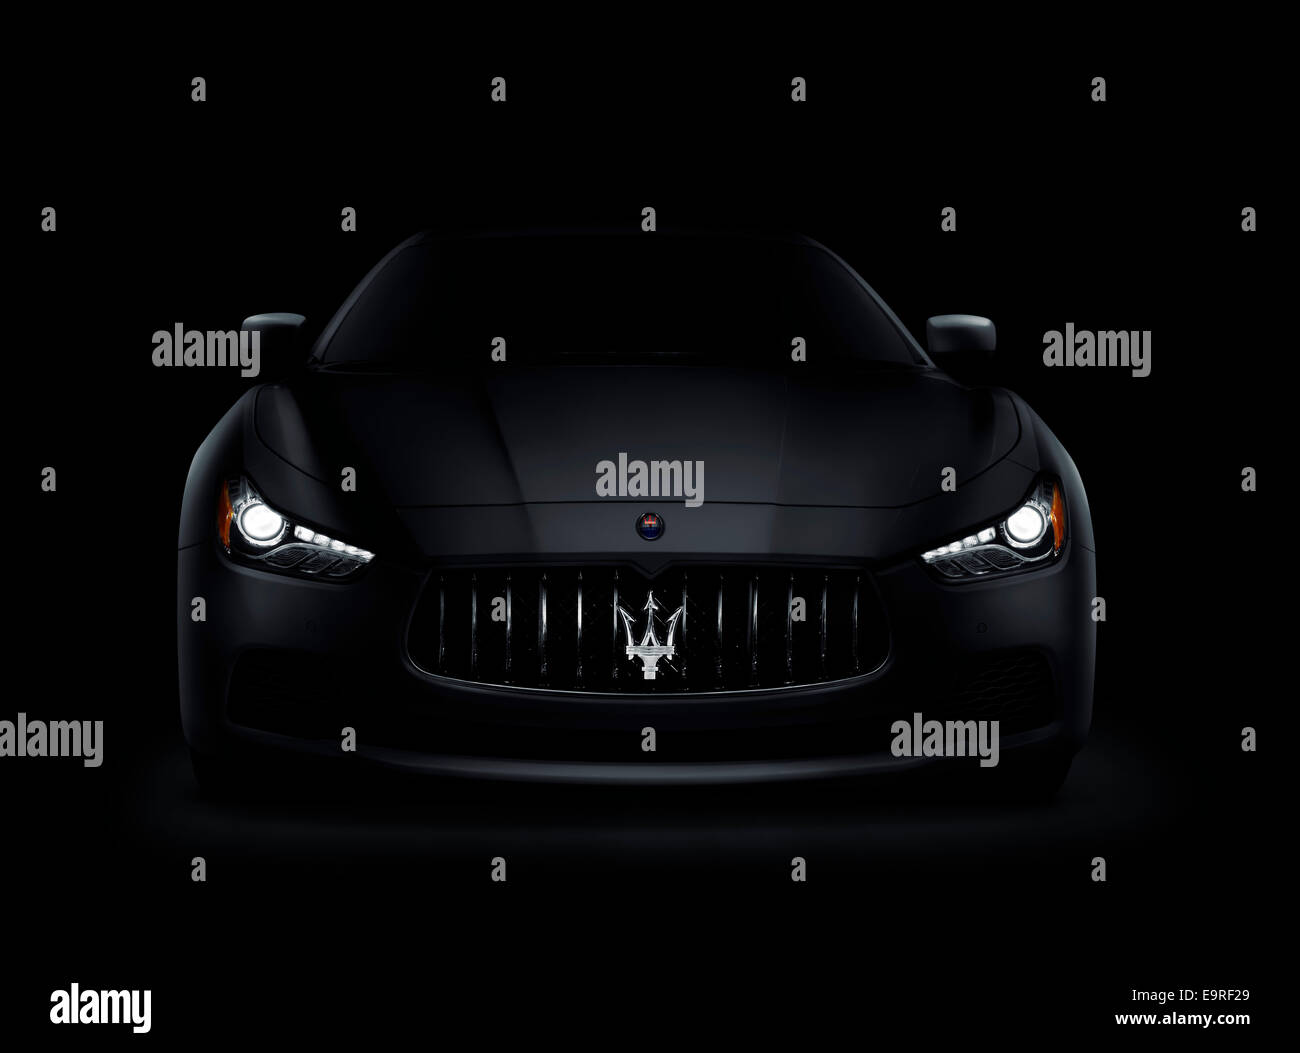 Dramatic photo of a dark 2014 Maserati Ghibli S Q4 luxury car front view with shining headlights isolated on black - Stock Image